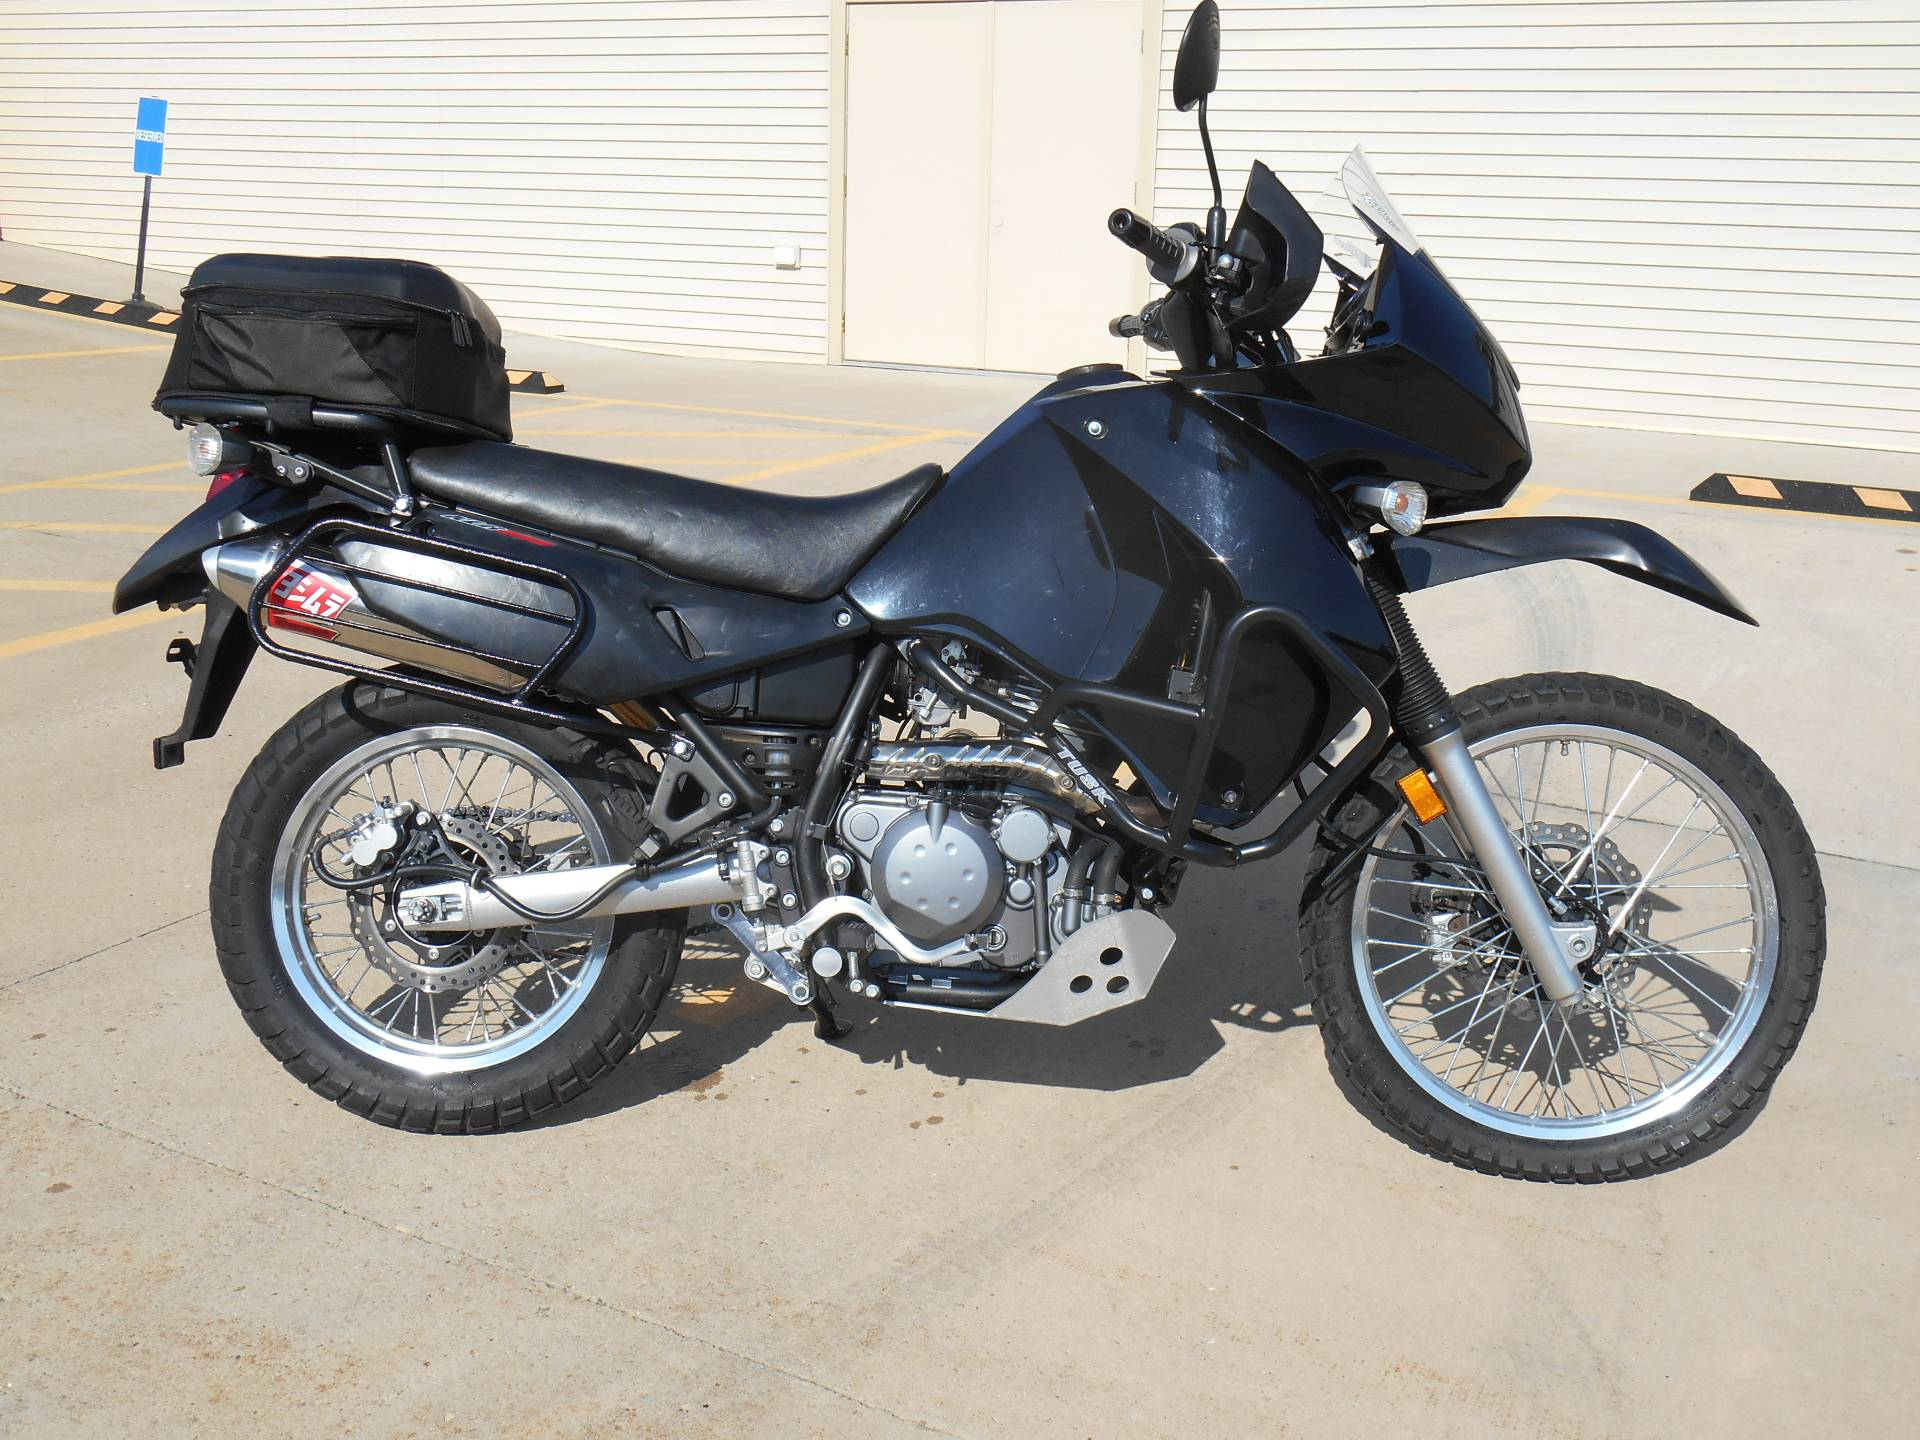 Used 2009 Kawasaki KLR™650 Motorcycles in Dubuque, IA | Stock Number ...